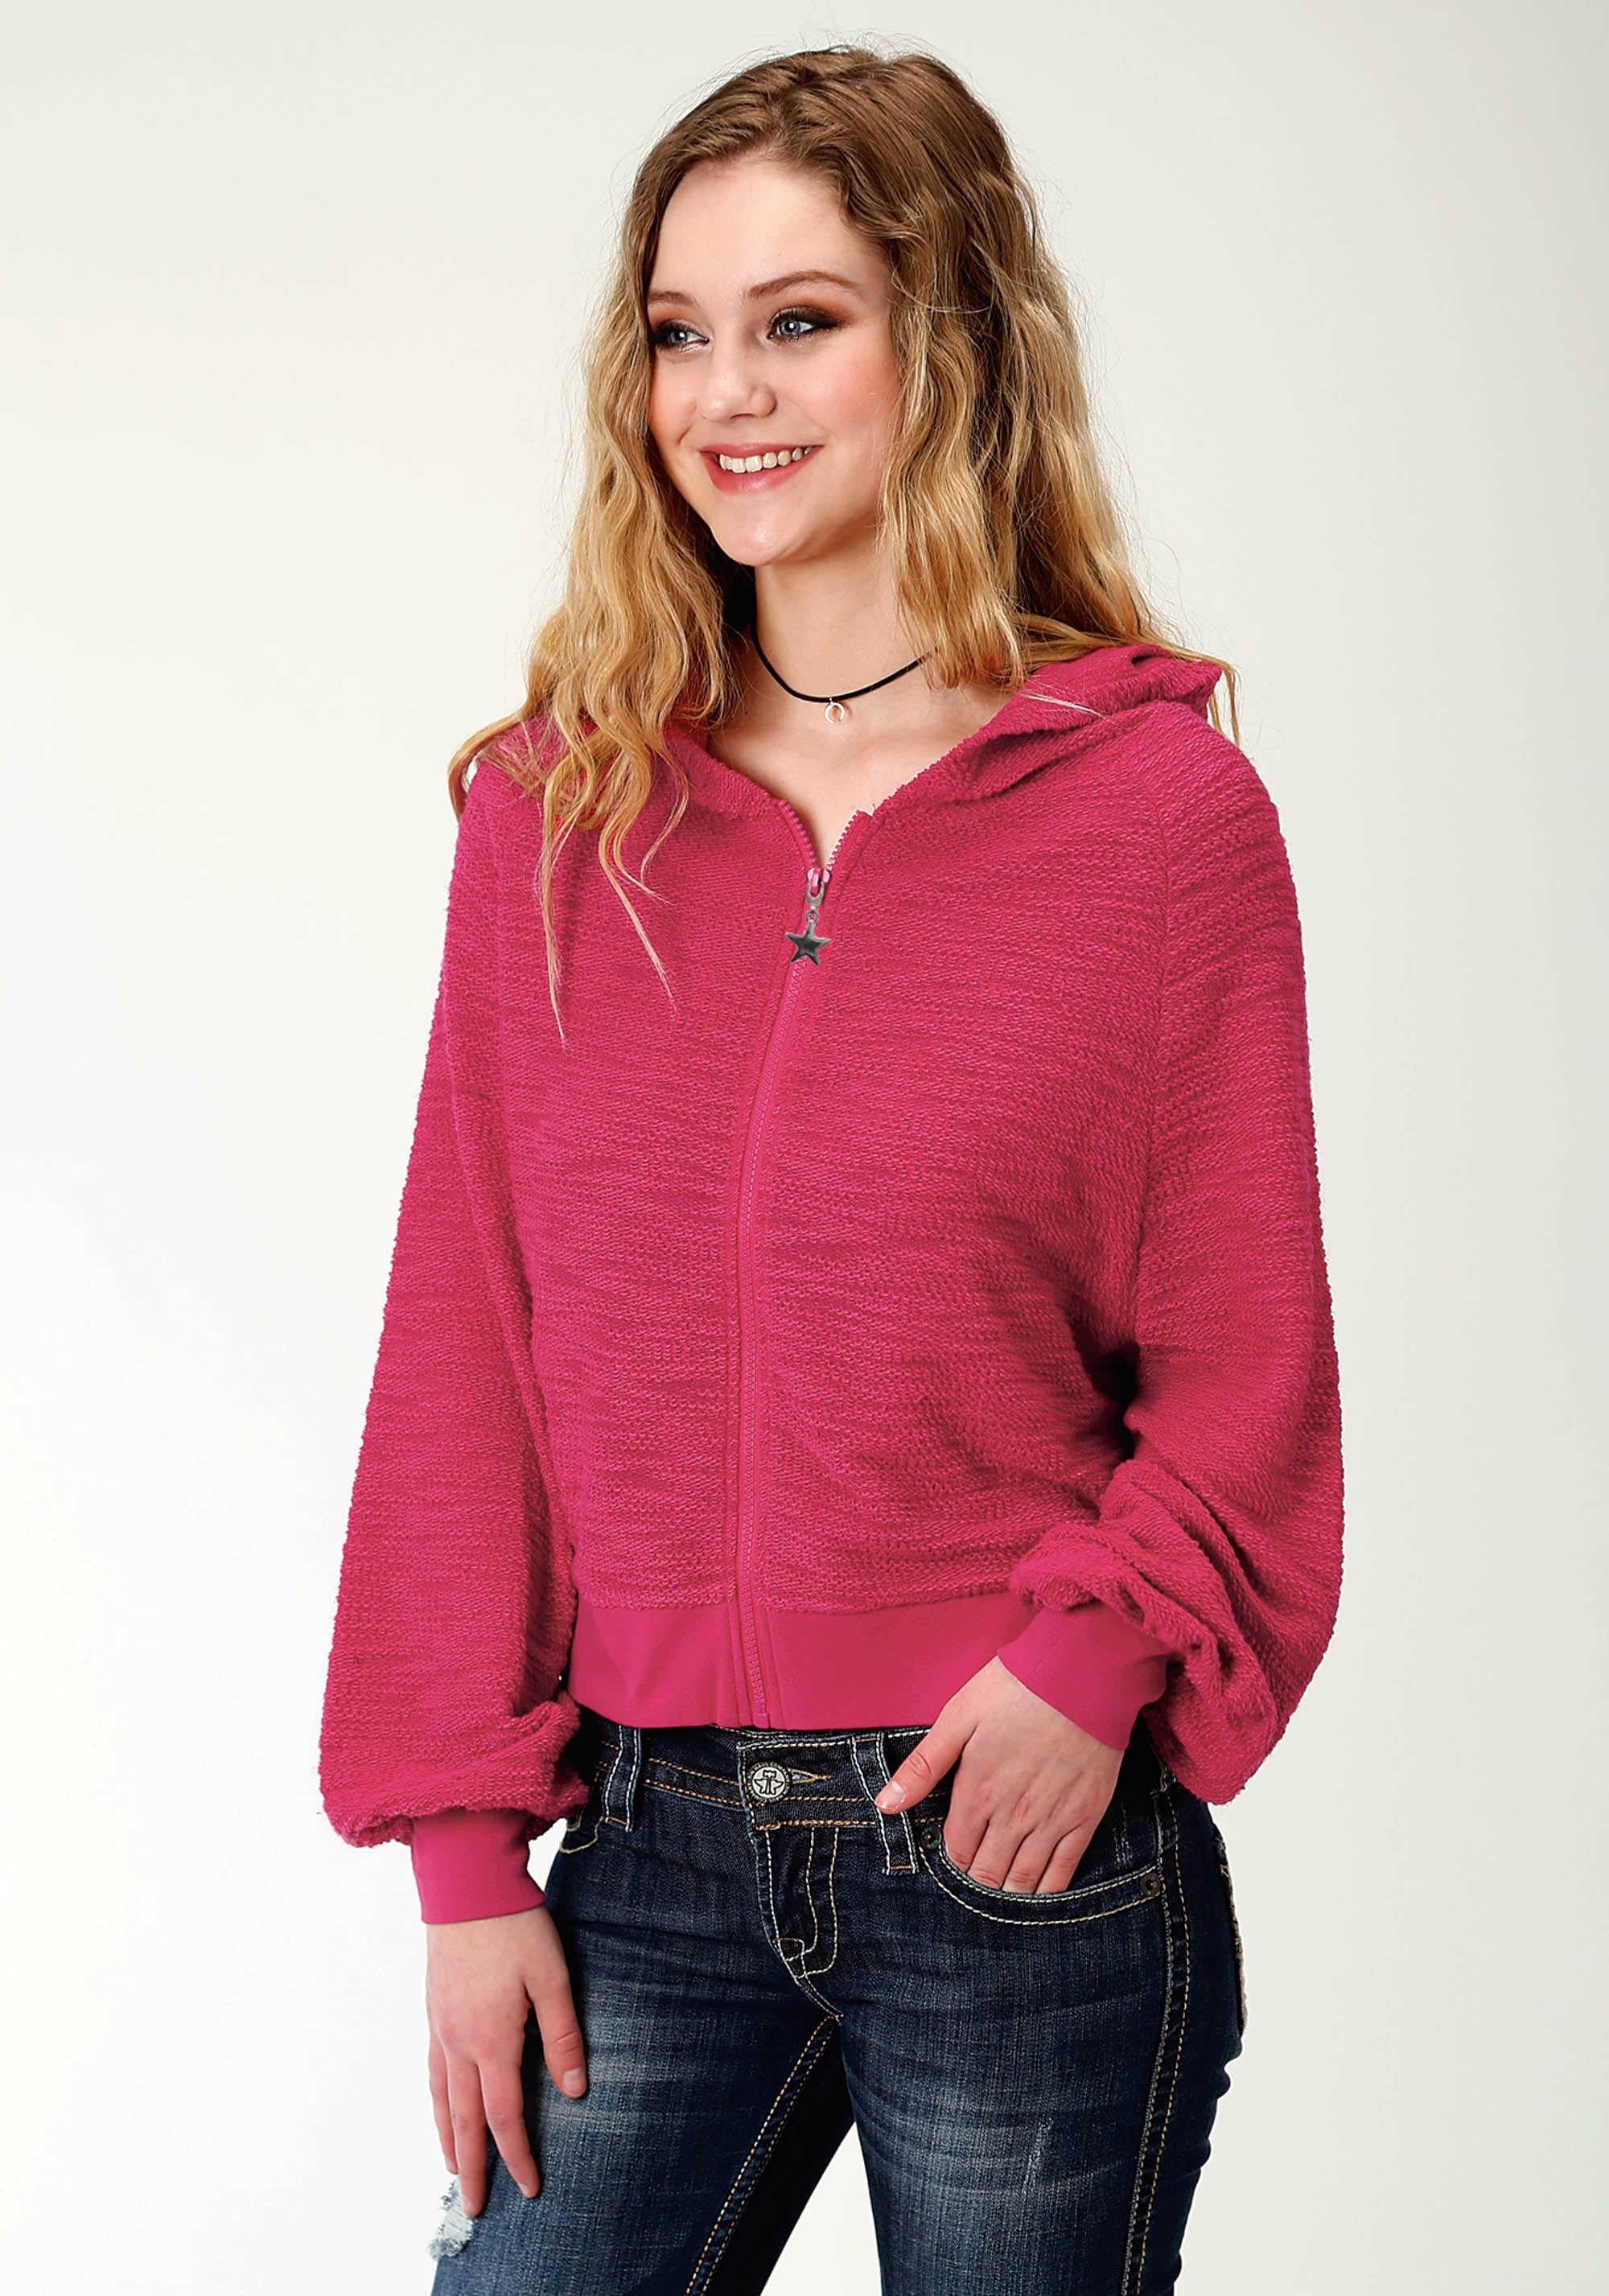 ROPER WOMENS PINK 2263 TEXTURED KNIT HOODED JACKET FIVE STAR COLLECTION- WINTER II LONG SLEEVE